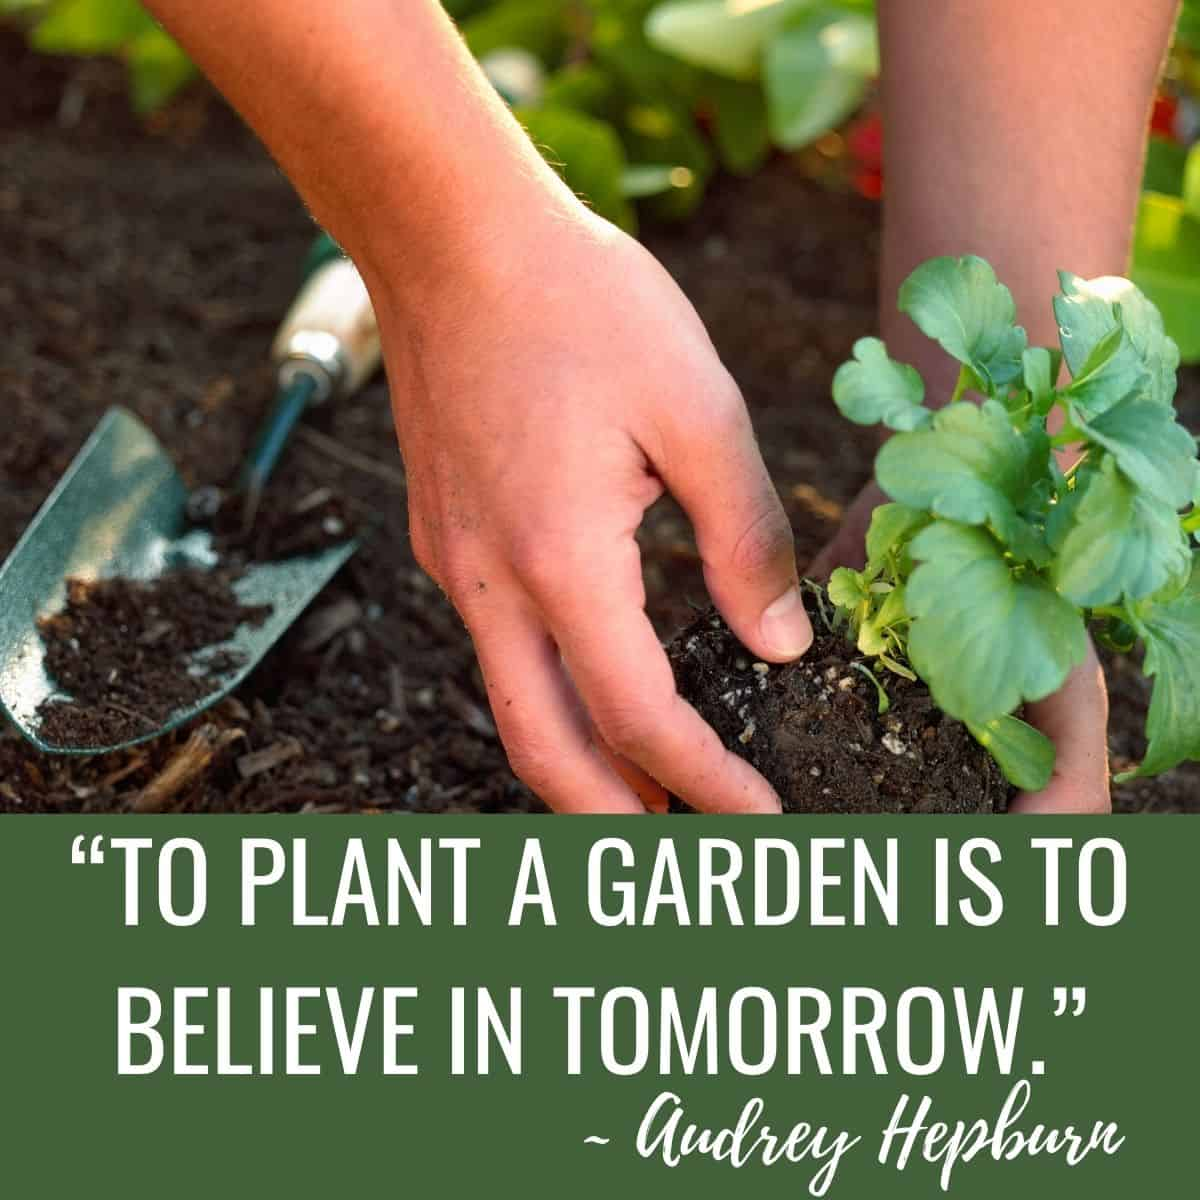 Garden quote: To plant a garden is to believe in tomorrow by Audrey Hepburn